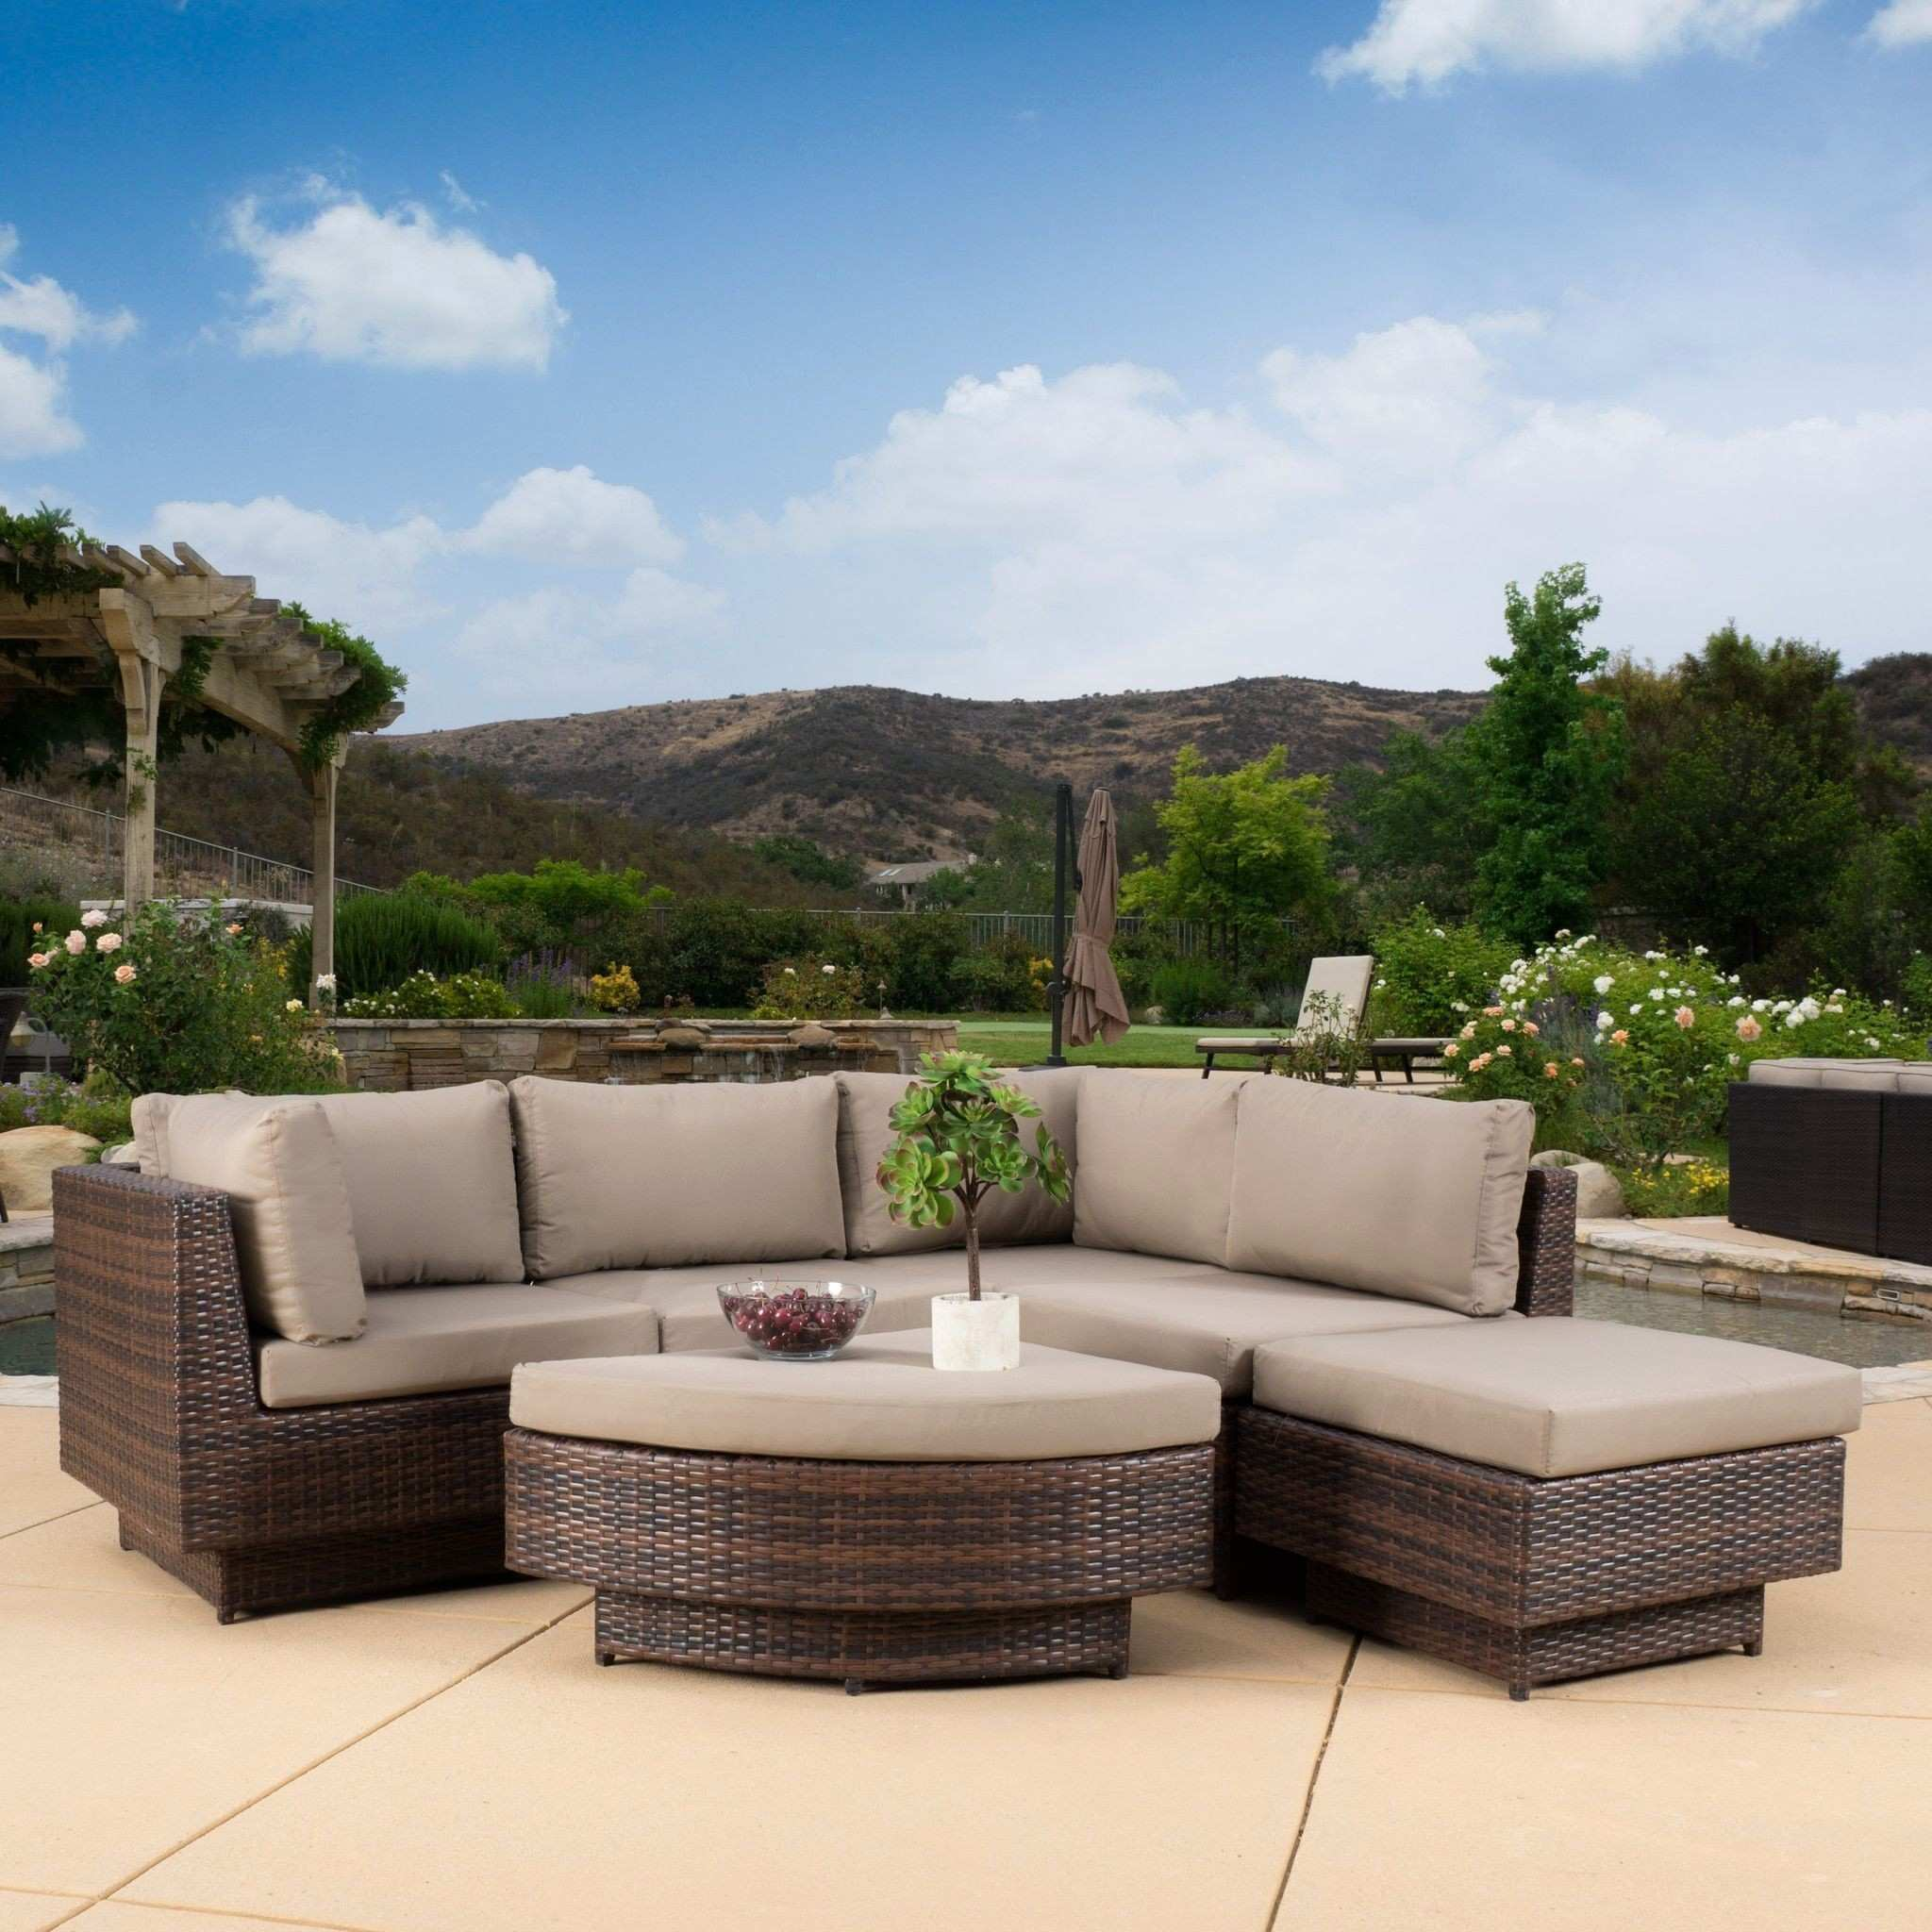 Outdoor Side Table Ideas Home Decor Delightful Patio Sectional